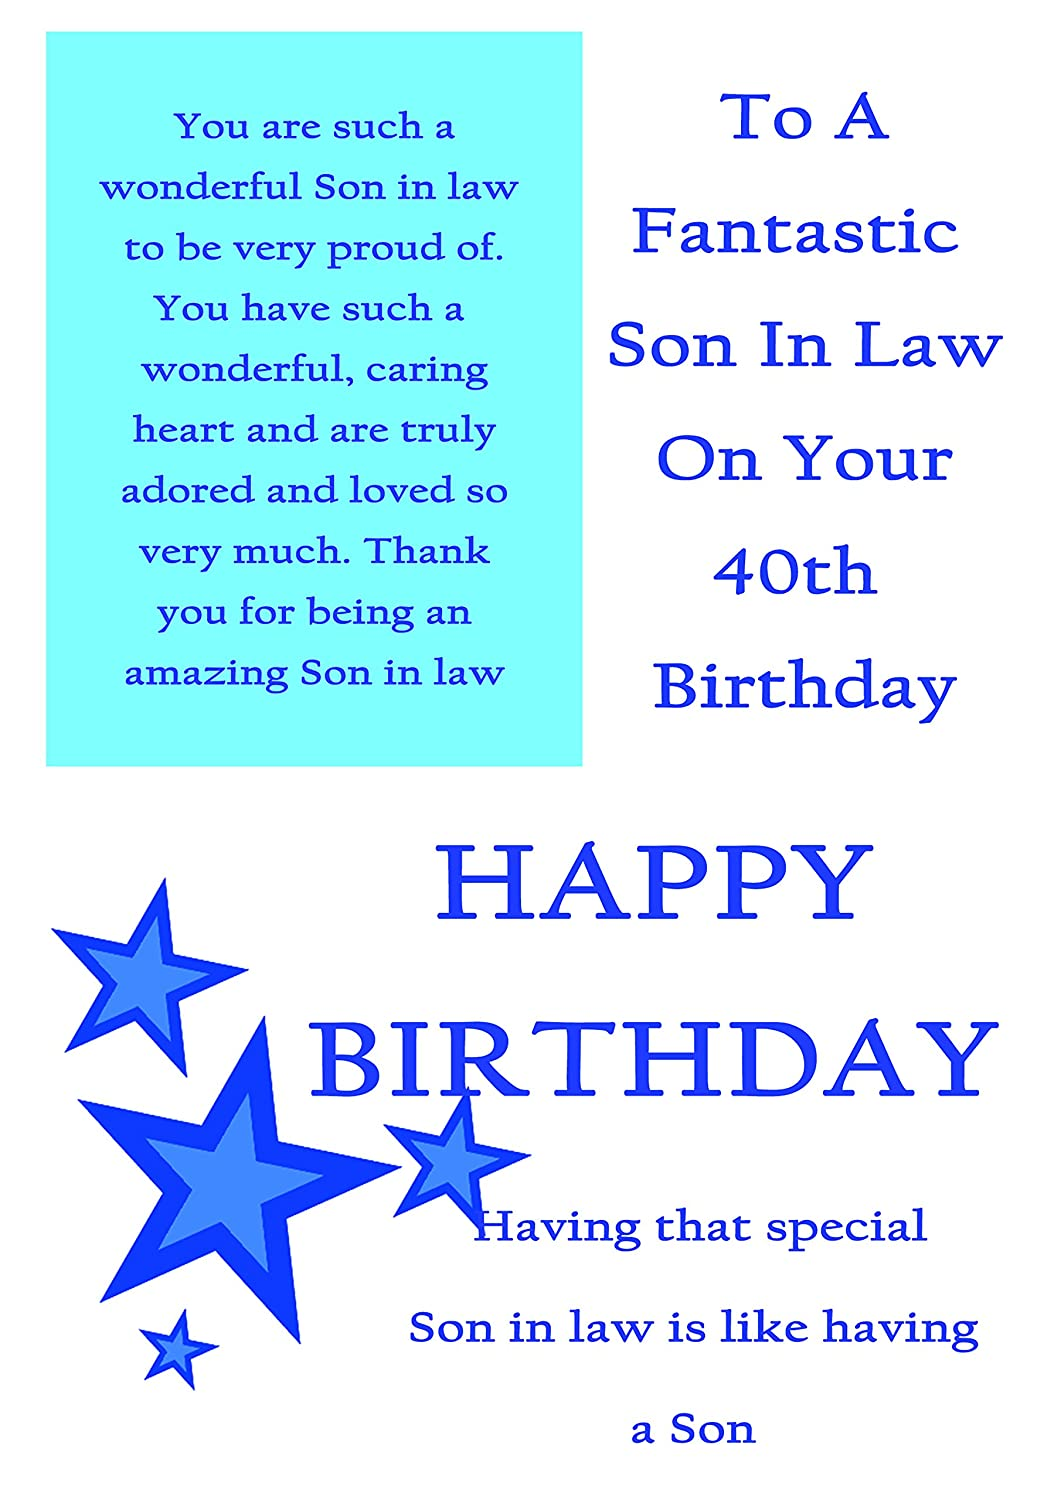 Son In Law 40th Birthday Card With Removable Laminate Amazoncouk Office Products